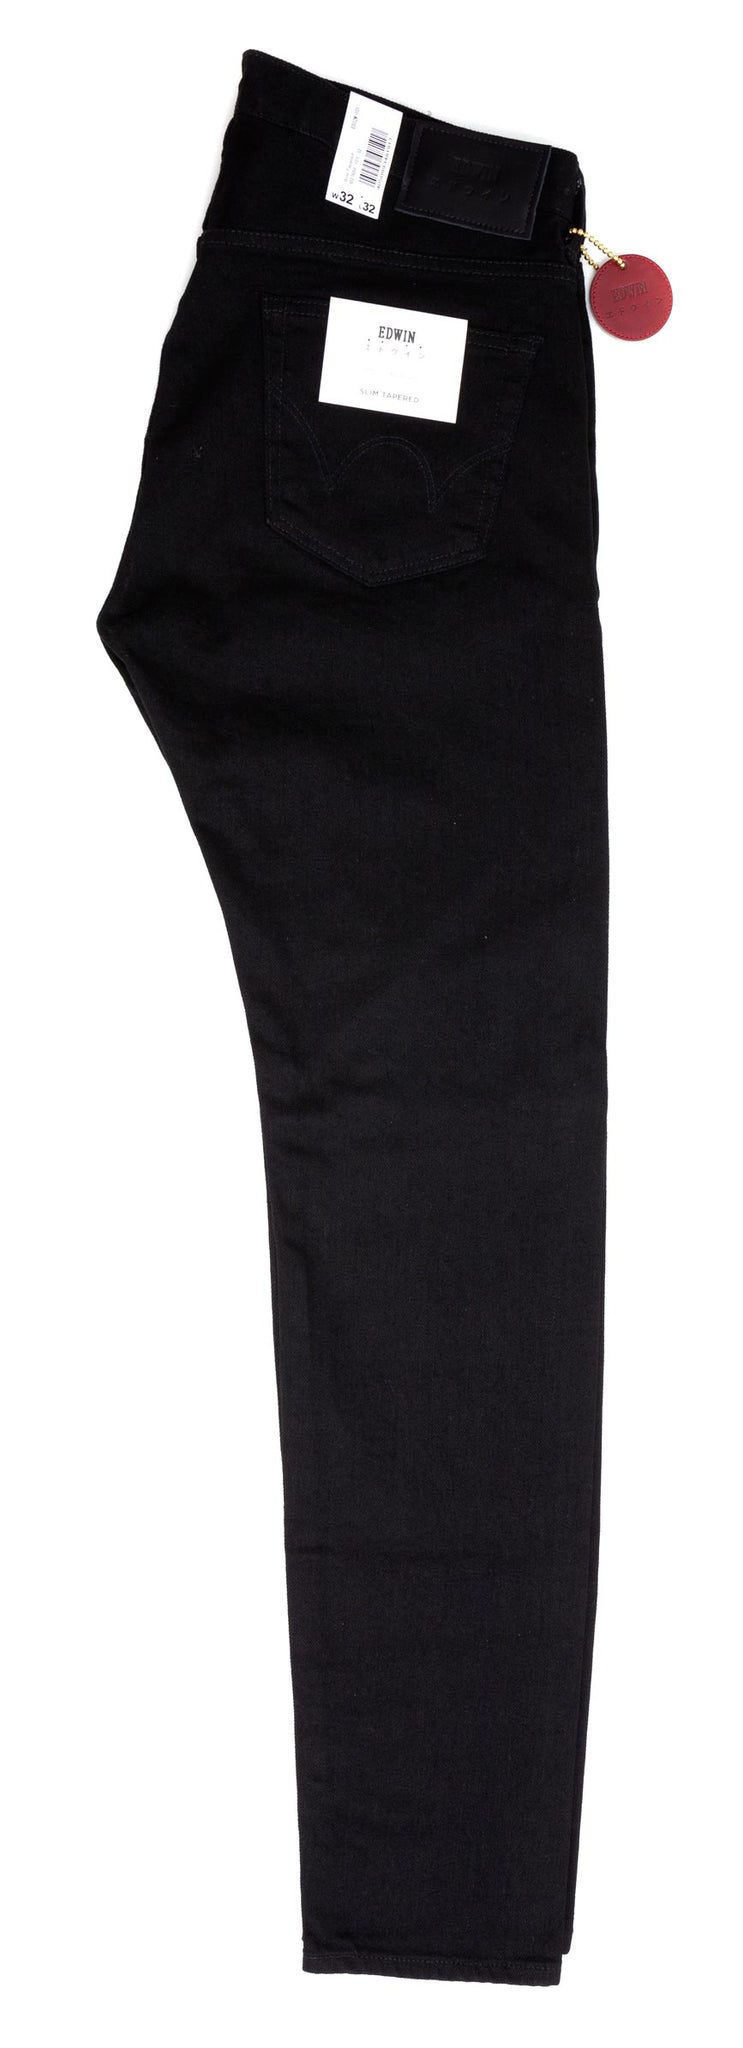 Edwin - Slim Tapered Jeans - (ED32M-101) - Solid Black Denim - Regent Tailoring